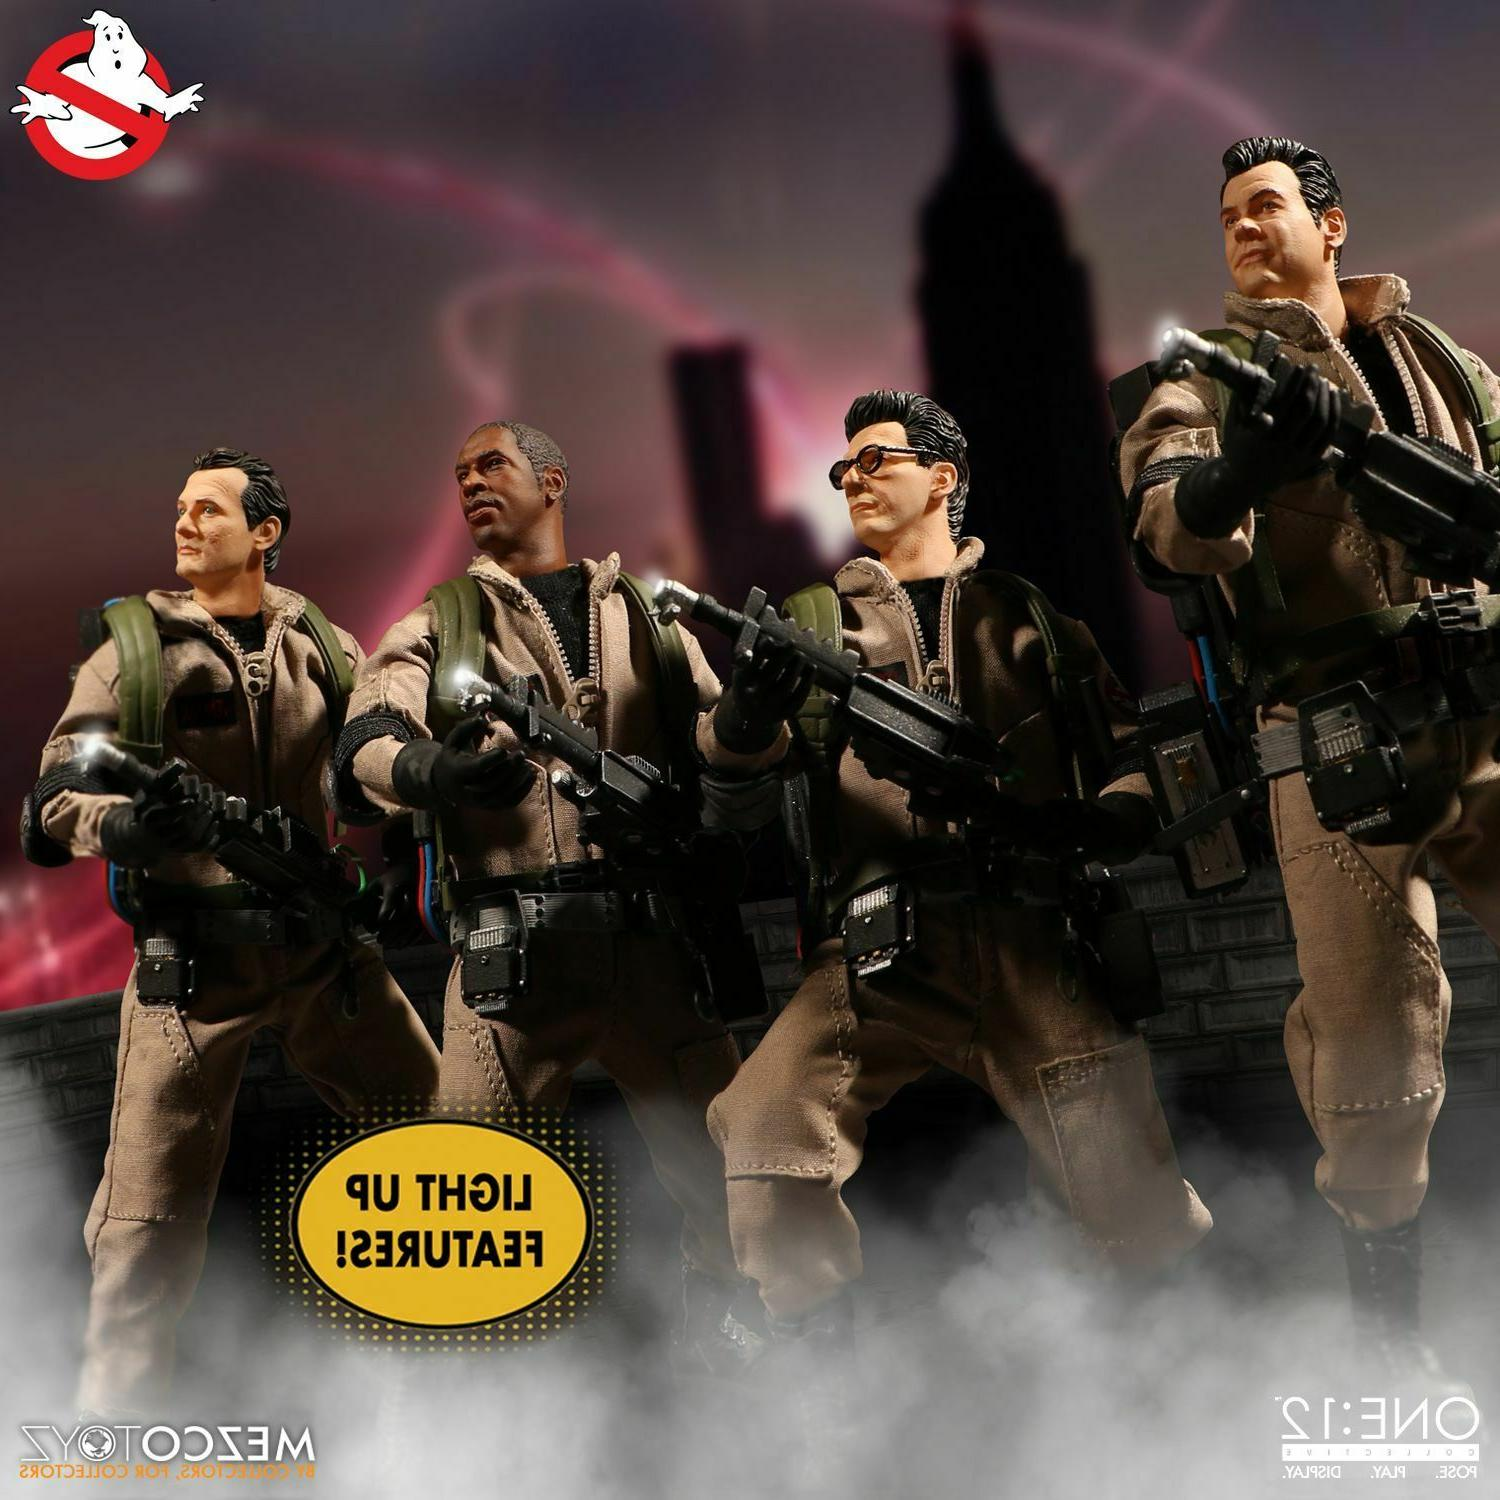 Mezco Ghostbusters Action Deluxe